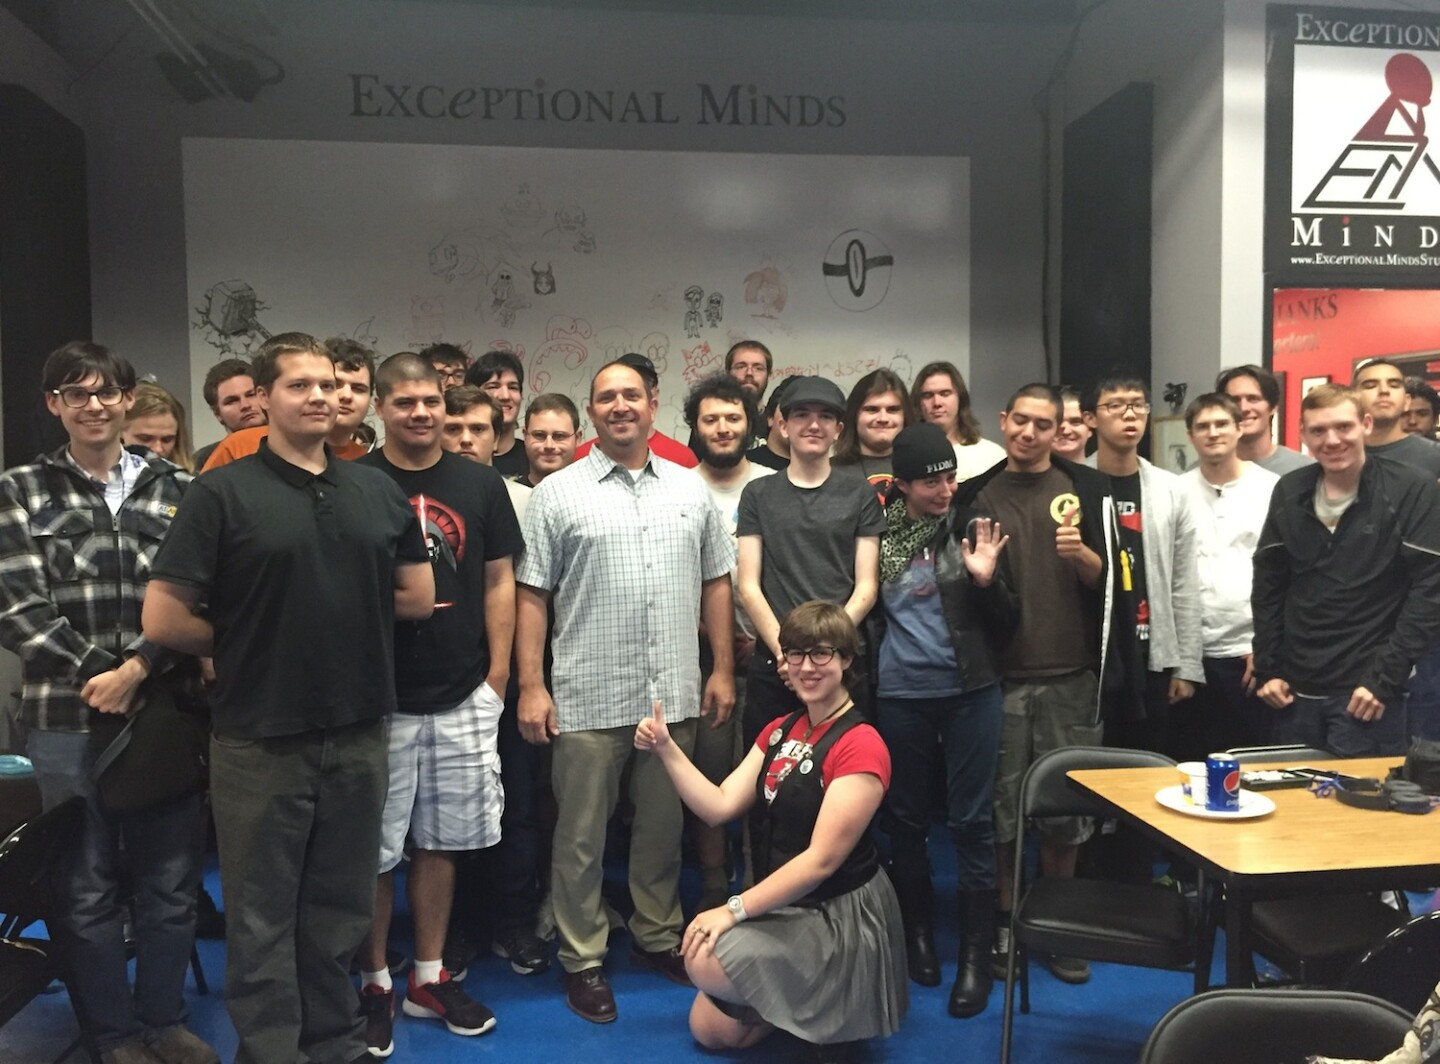 Exceptional Minds student group photo